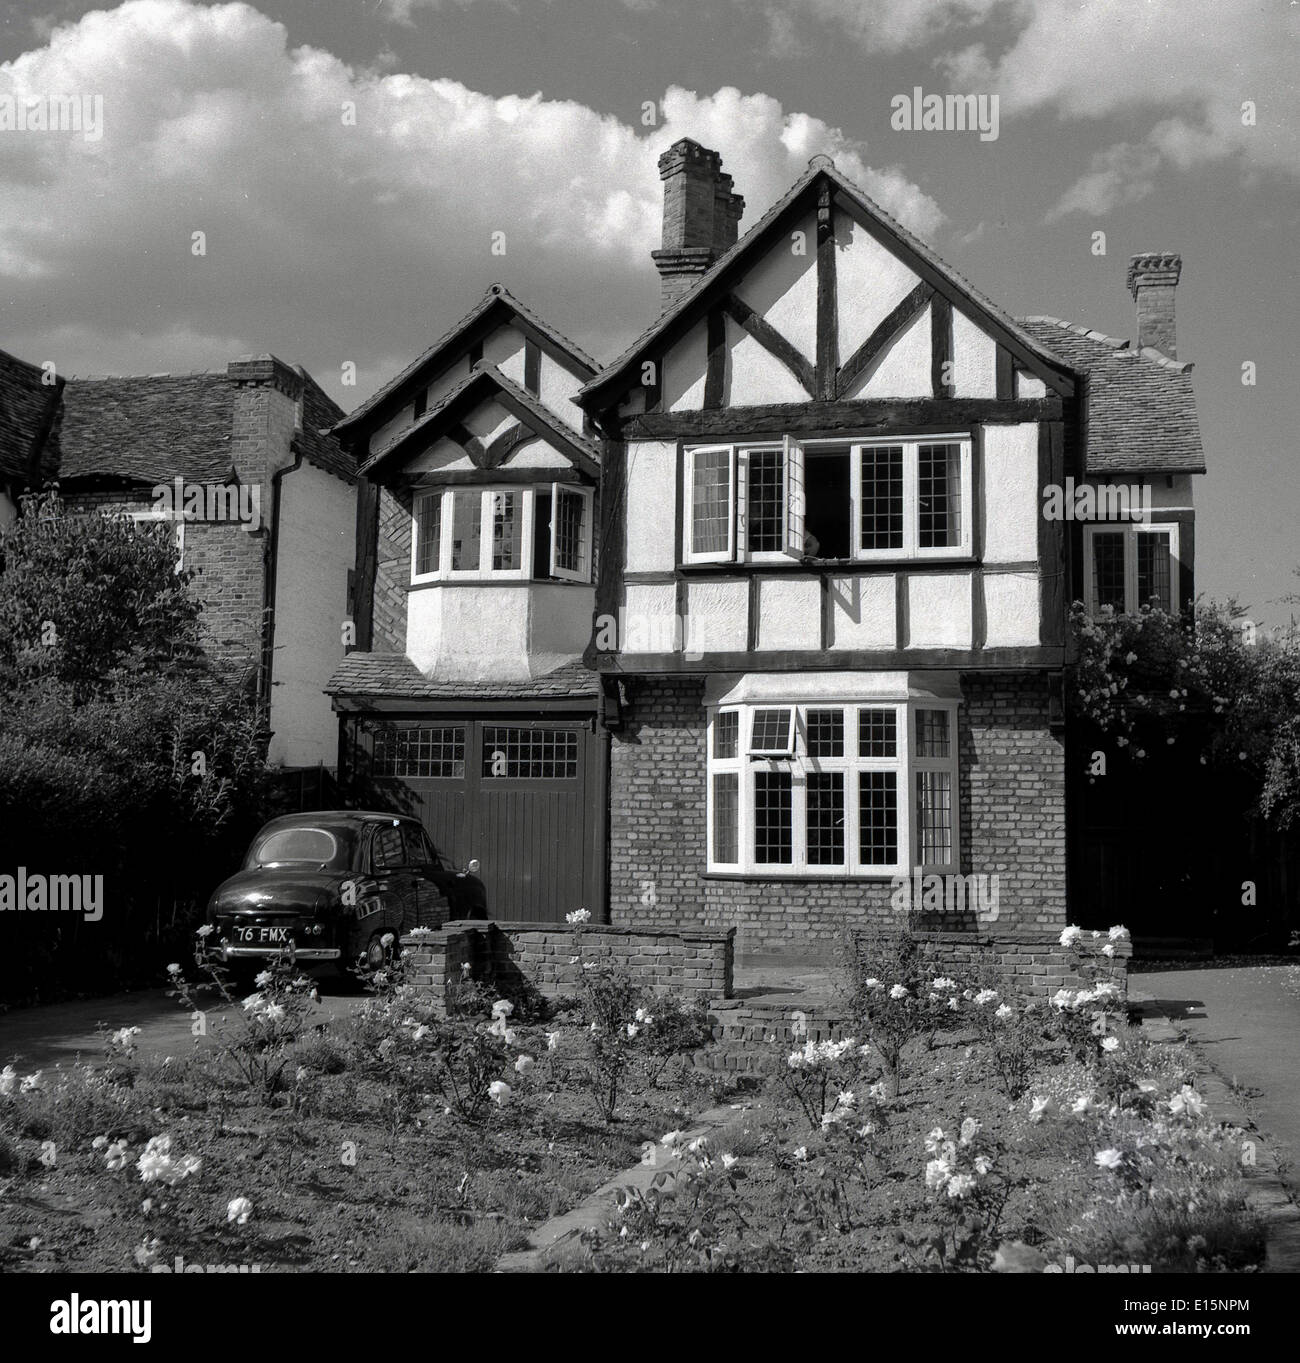 1950S House Prepossessing 1950Shistorical Picture Of Mock Tudor English Suburban House Inspiration